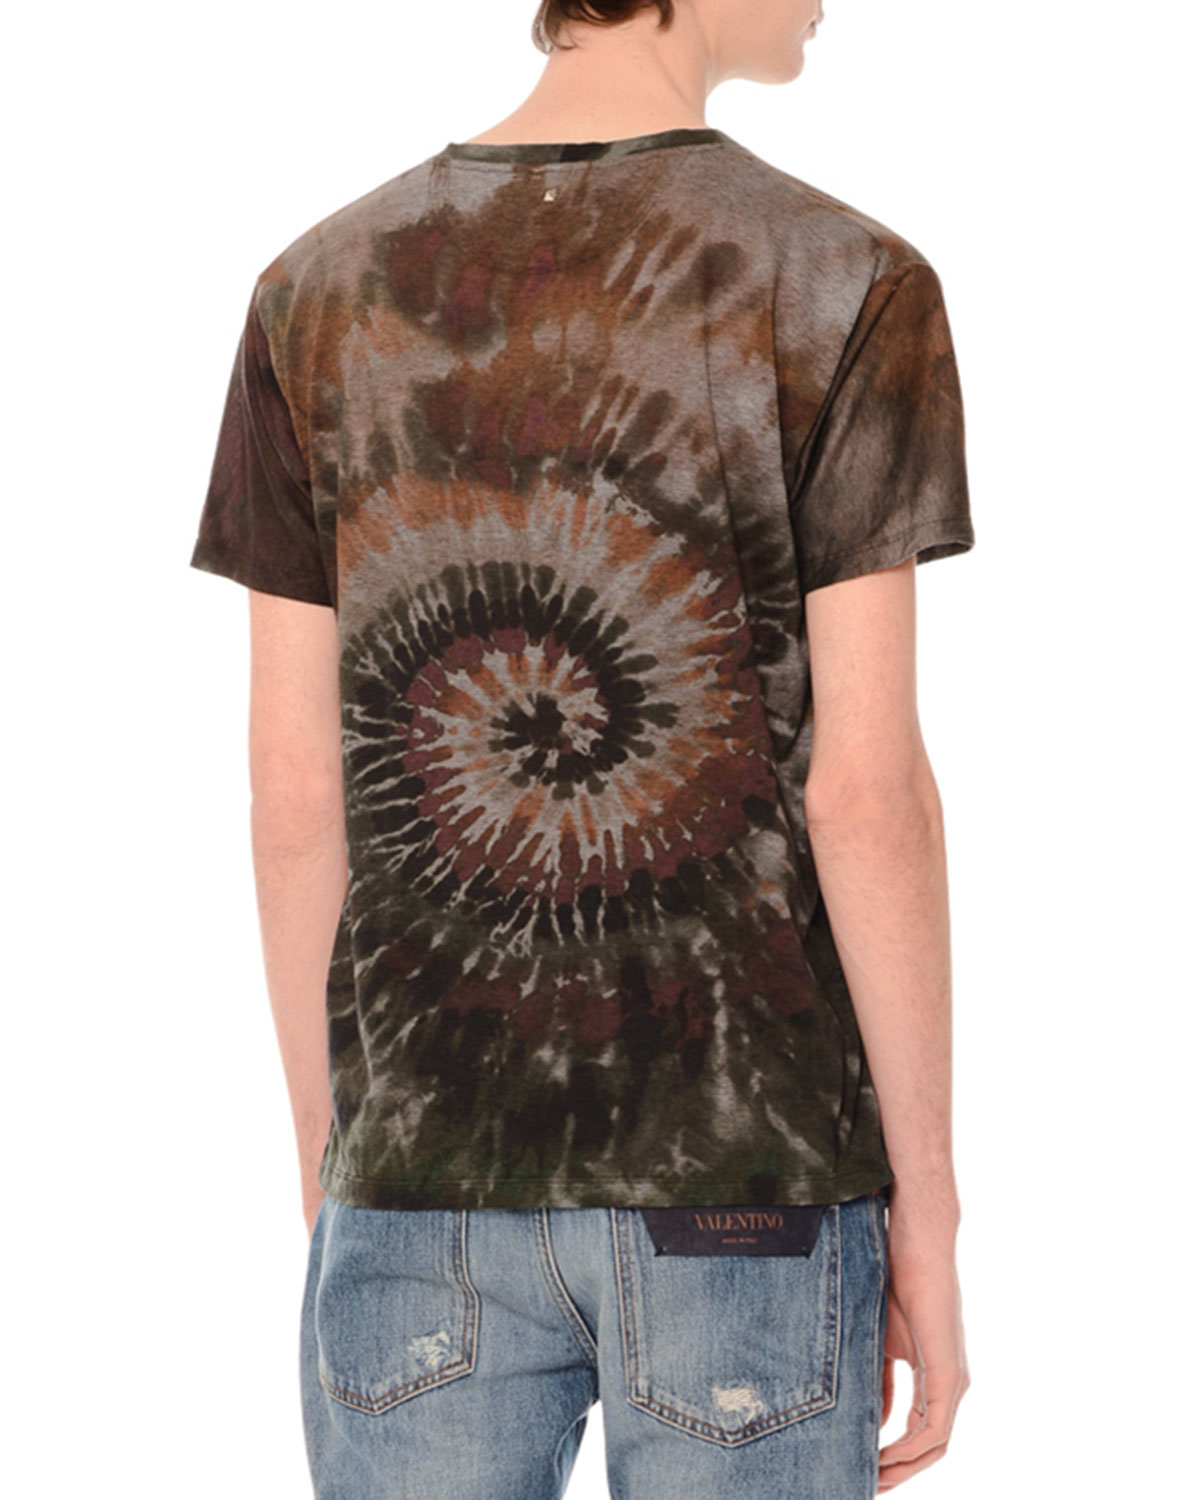 Krazy Tees Tie Dye Style T-Shirts for Men and Women - Fun, Multi Color Tops. by Krazy Tees. $ - $ $ 9 $ 12 99 Prime. FREE Shipping on eligible orders. Some sizes/colors are Prime eligible. out of 5 stars Product Features.